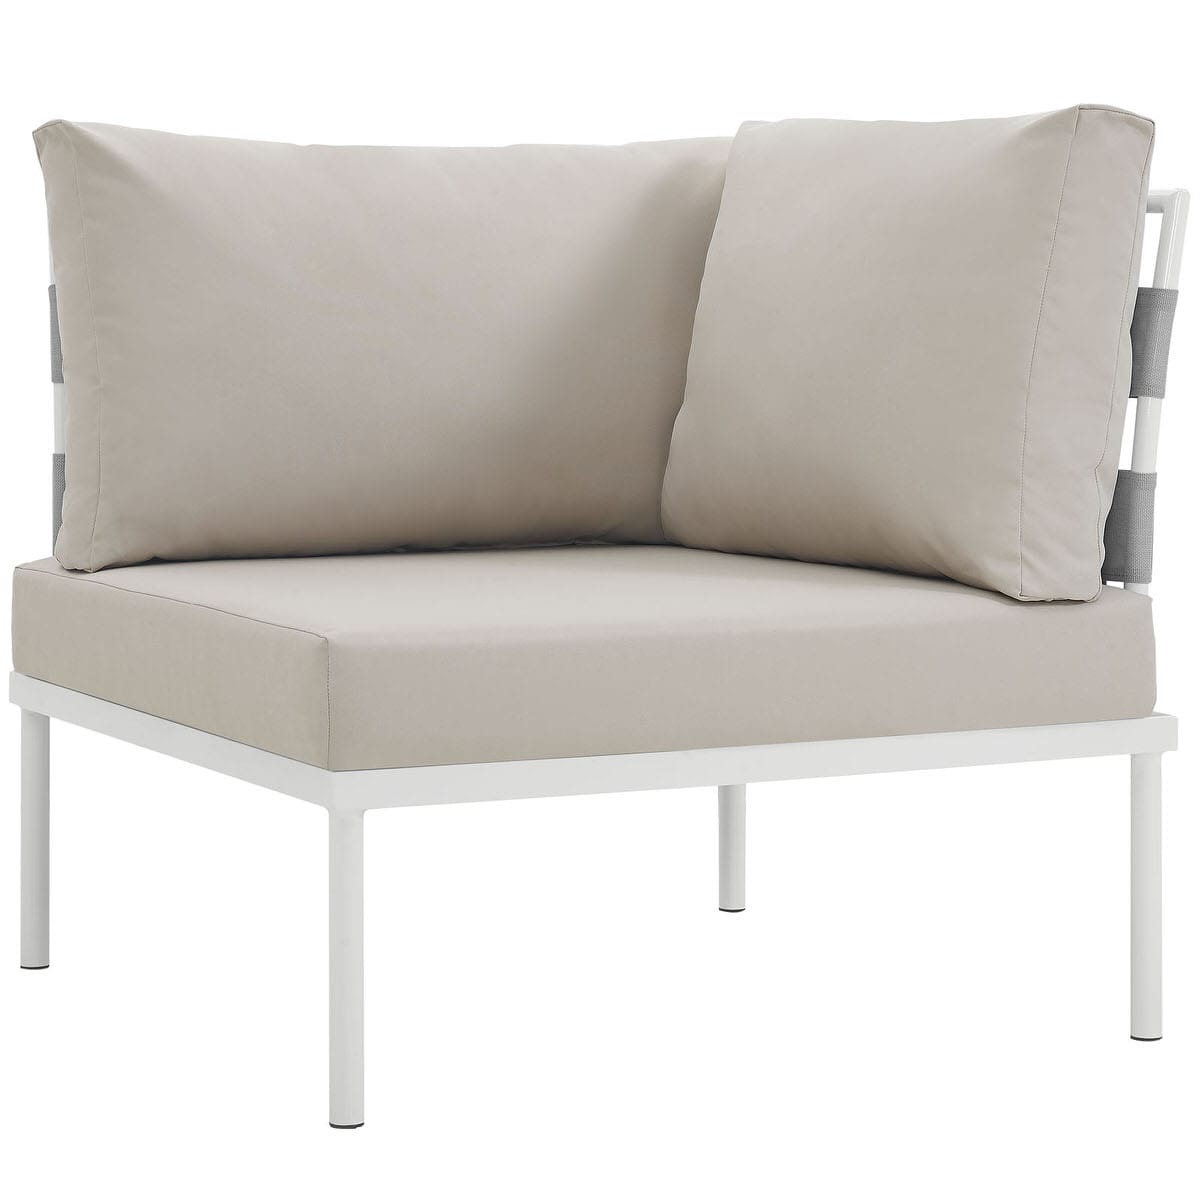 Harmony Outdoor Patio Aluminum Corner Sofa White Beige by Modern Living